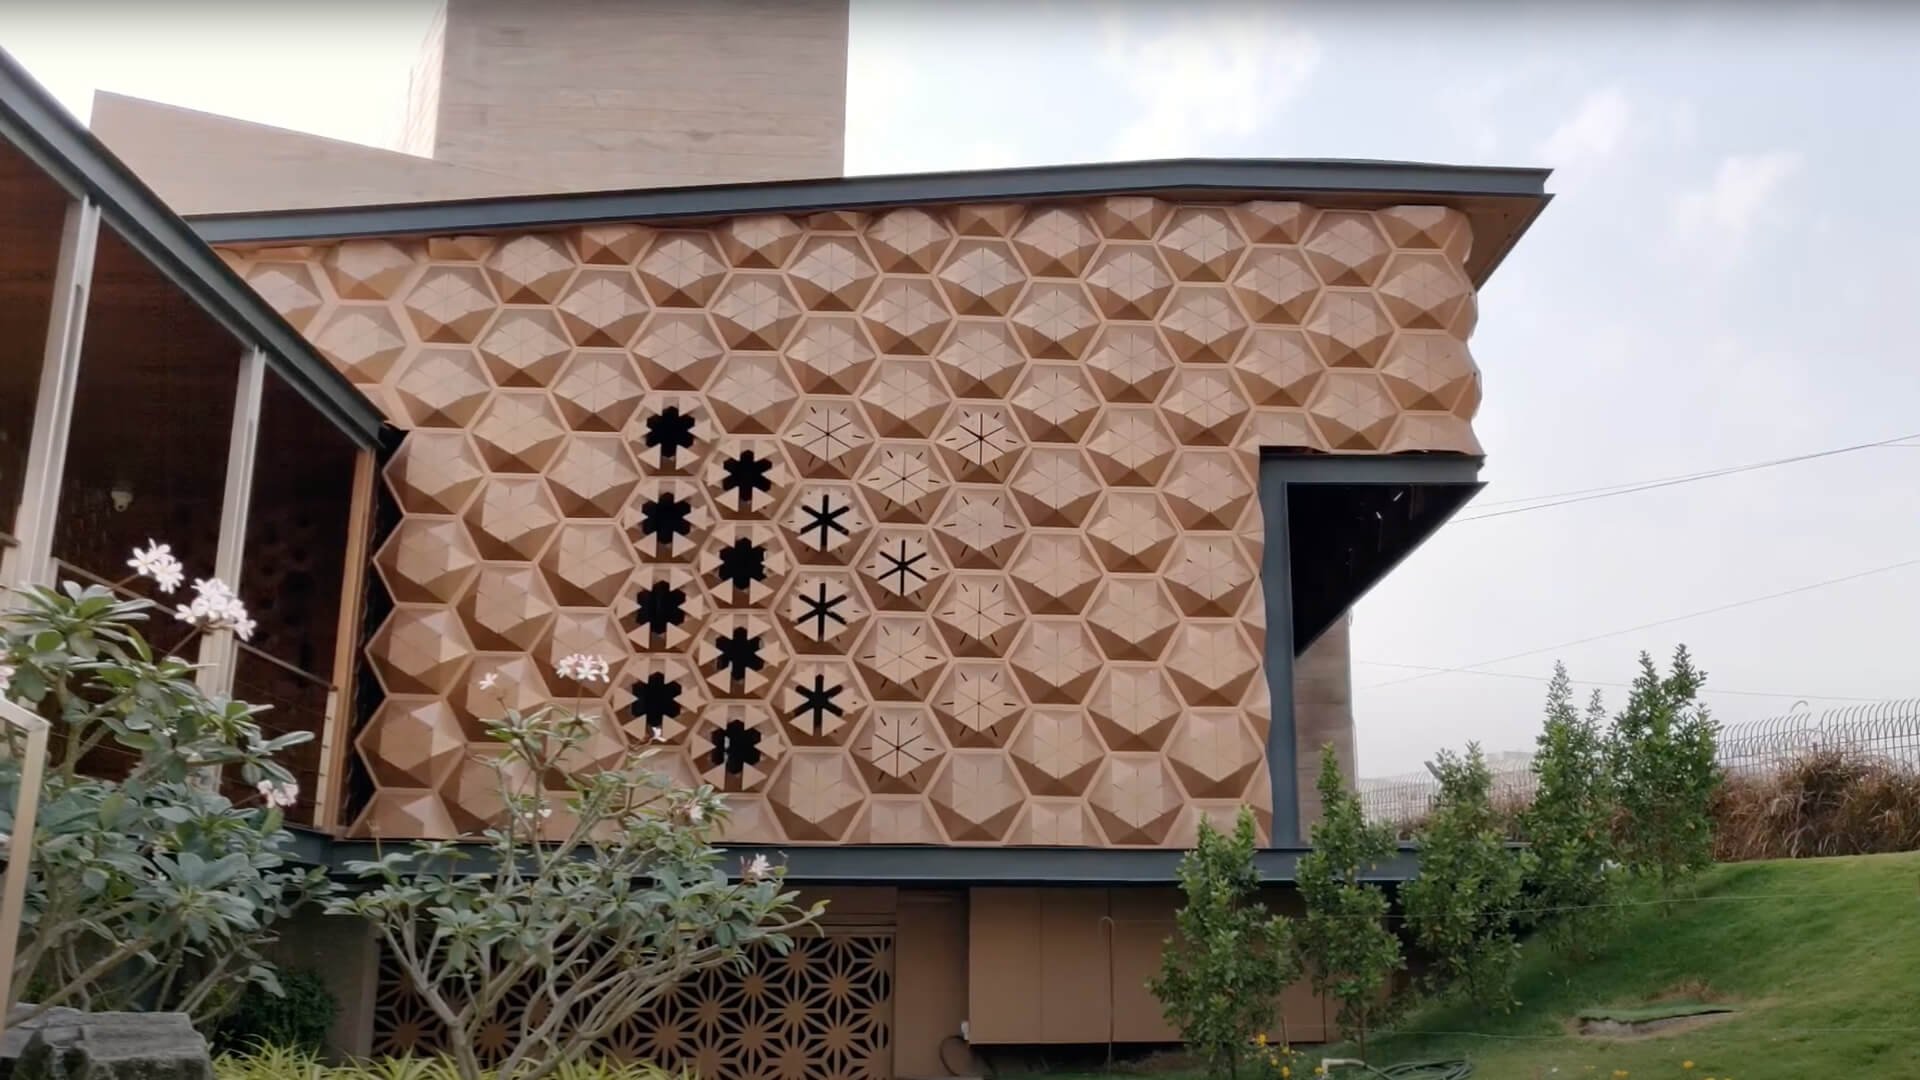 Biomimicry marries art and engineering in Hive by Openideas Architects in India